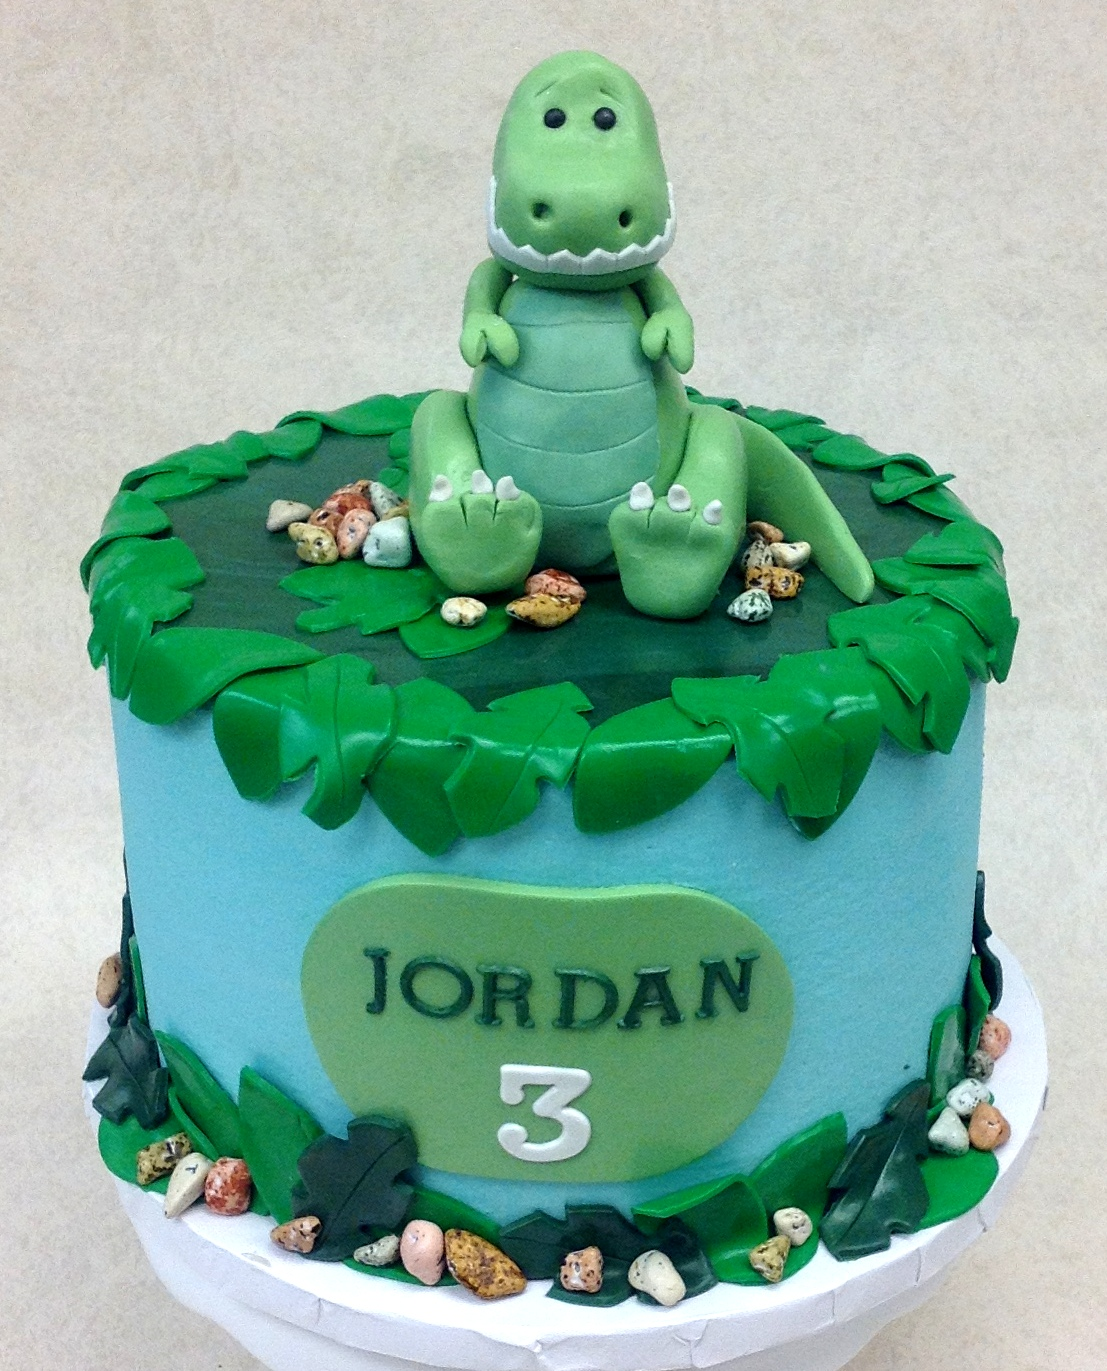 Childrens Birthday Cakes Archives The Cupcake Shoppe